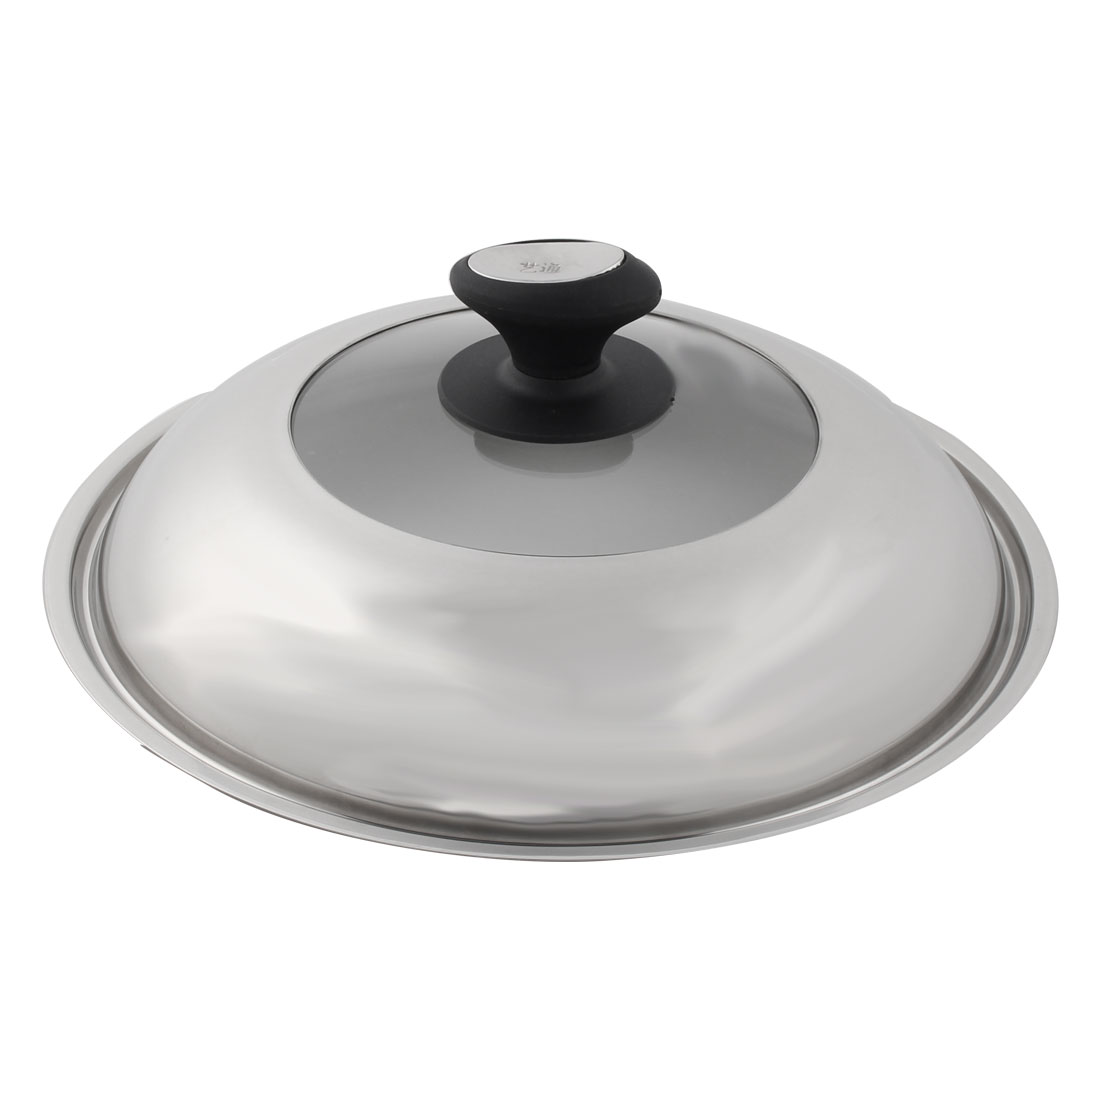 Kitchen Stainless Steel Cookware Cooker Boiler Pot Skillet Frying Pan Knob Lid Cover 34cm Dia